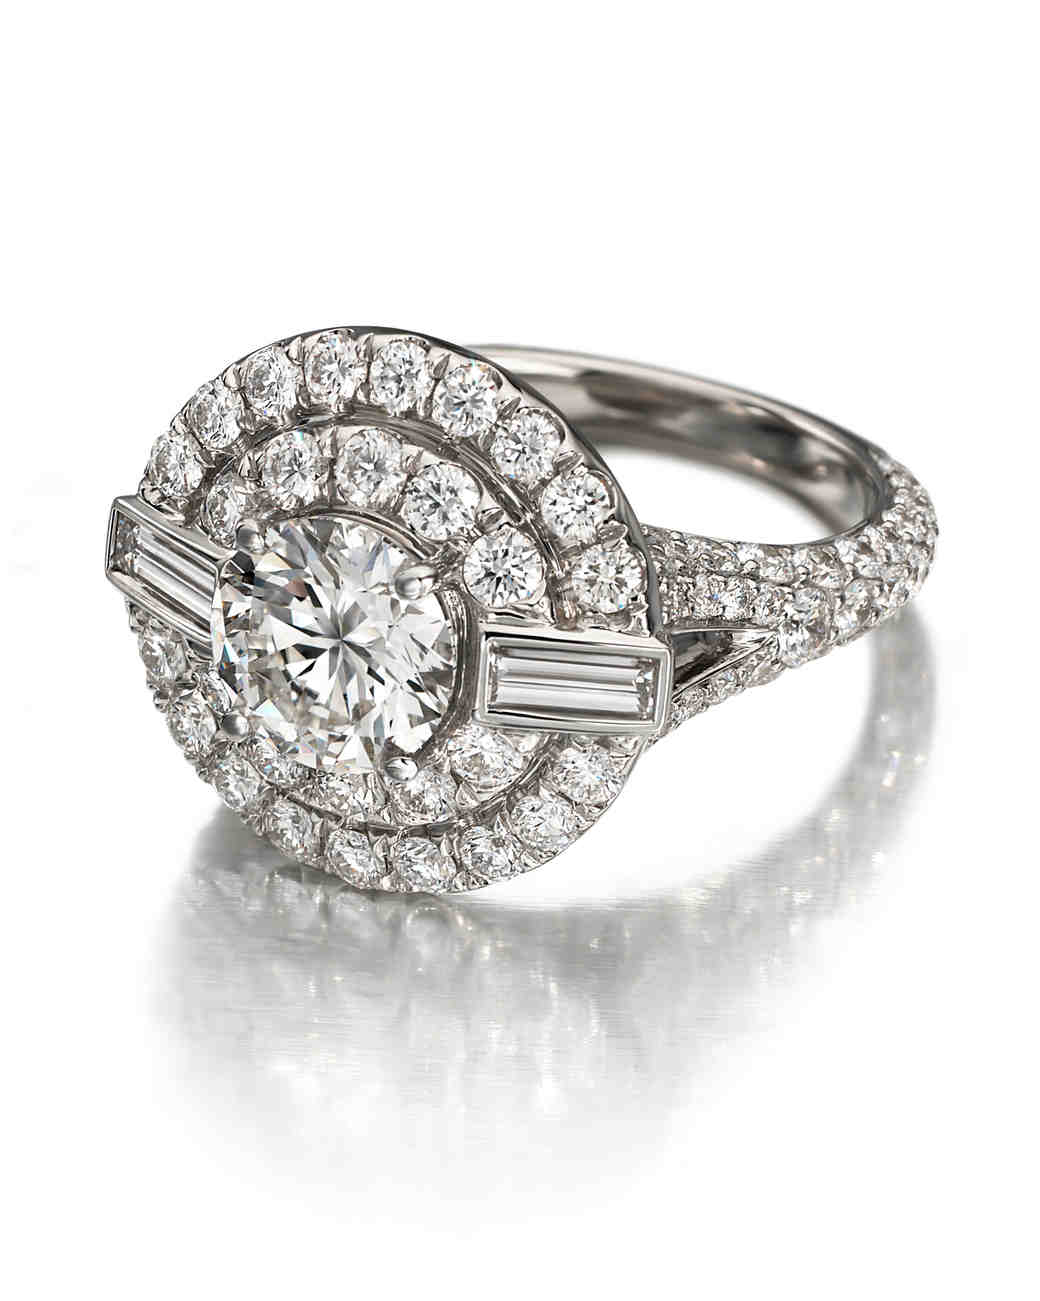 Forevermark by Maria Canale vintage-inspired art deco engagement ring